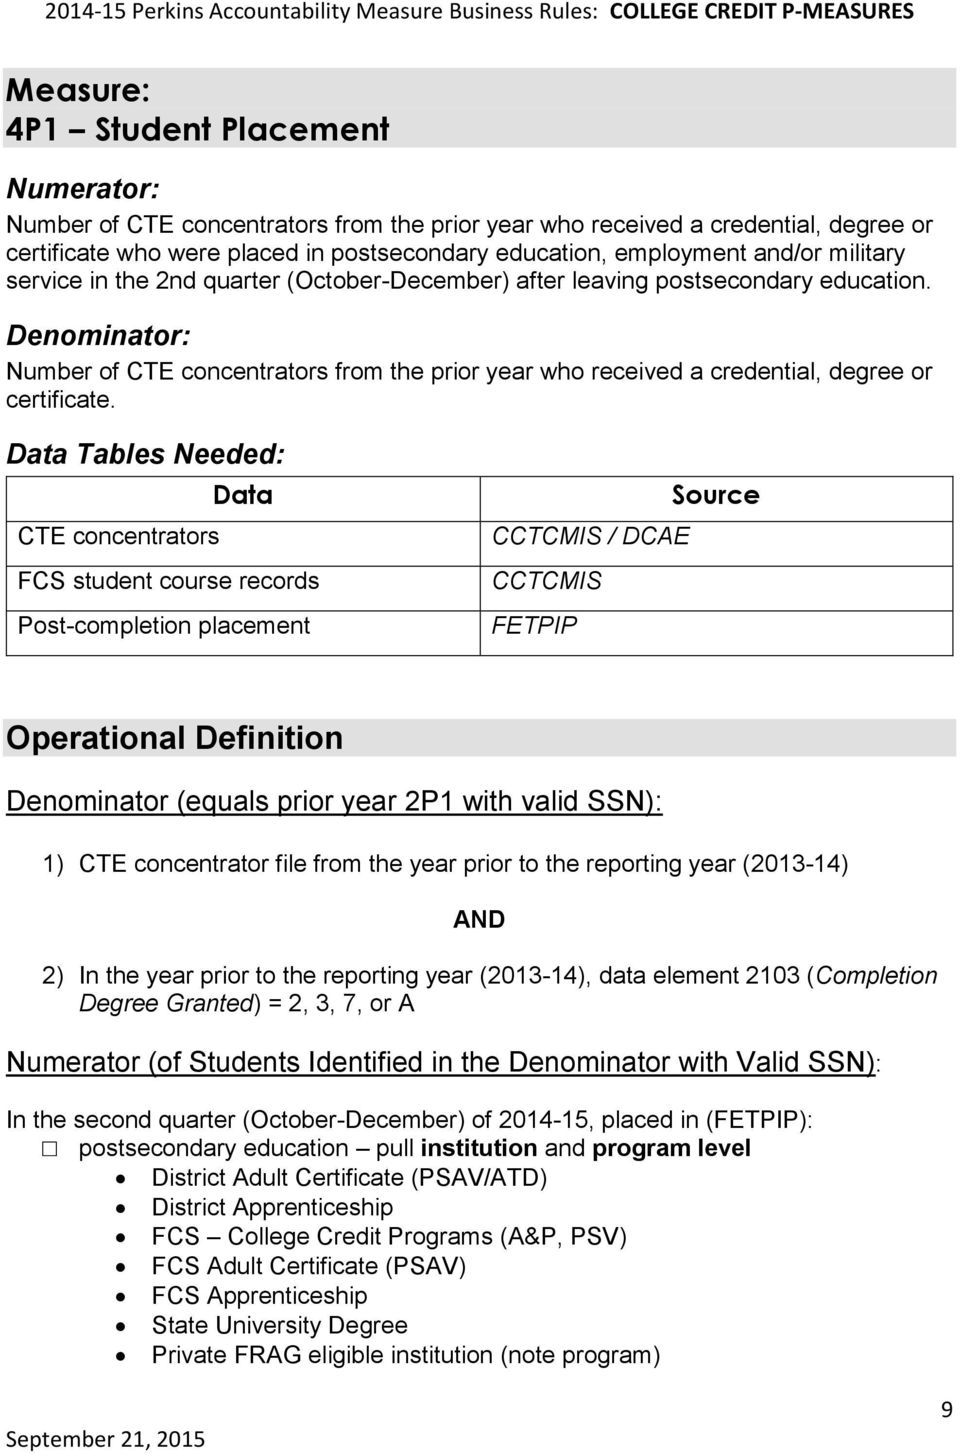 CTE concentrators FCS student course records Post-completion placement CCTCMIS / DCAE CCTCMIS FETPIP Denominator (equals prior year 2P1 with valid SSN): 1) CTE concentrator file from the year prior